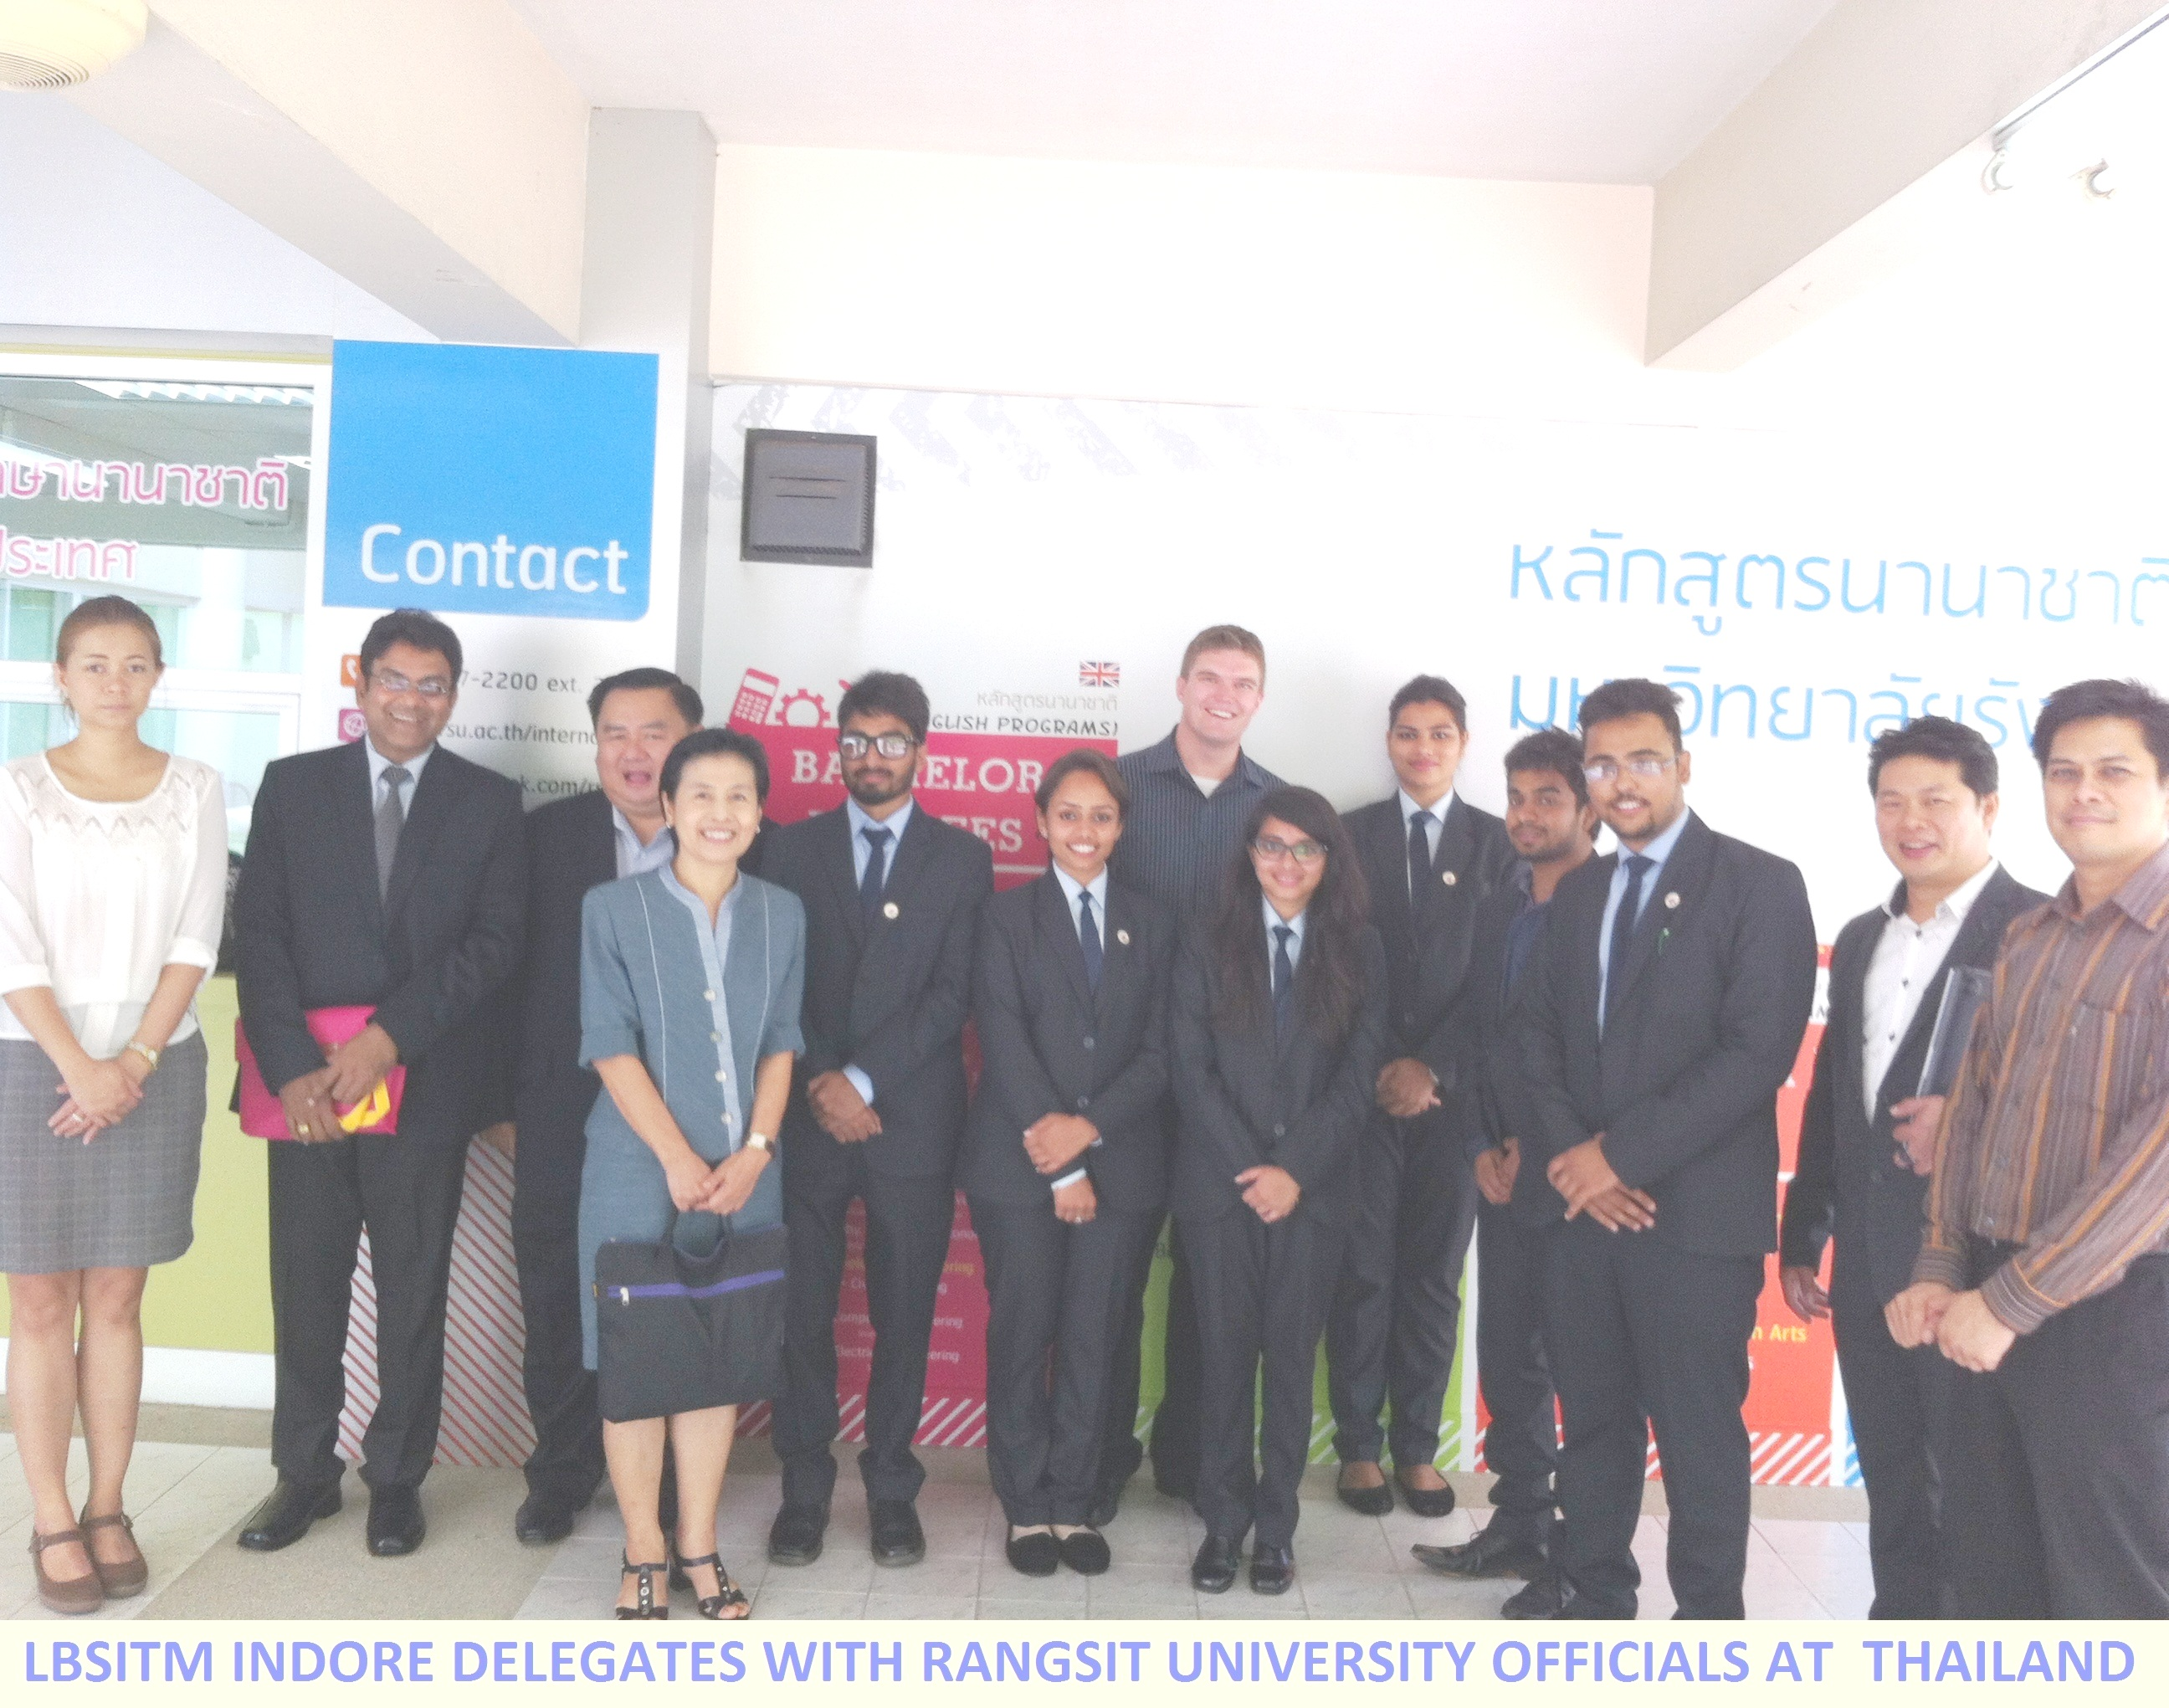 LBSITM INDORE DELEGATES WITH OFFICIALS OF RANGSIT UNIVERSITY, NONTHABURI, THAILAND1111